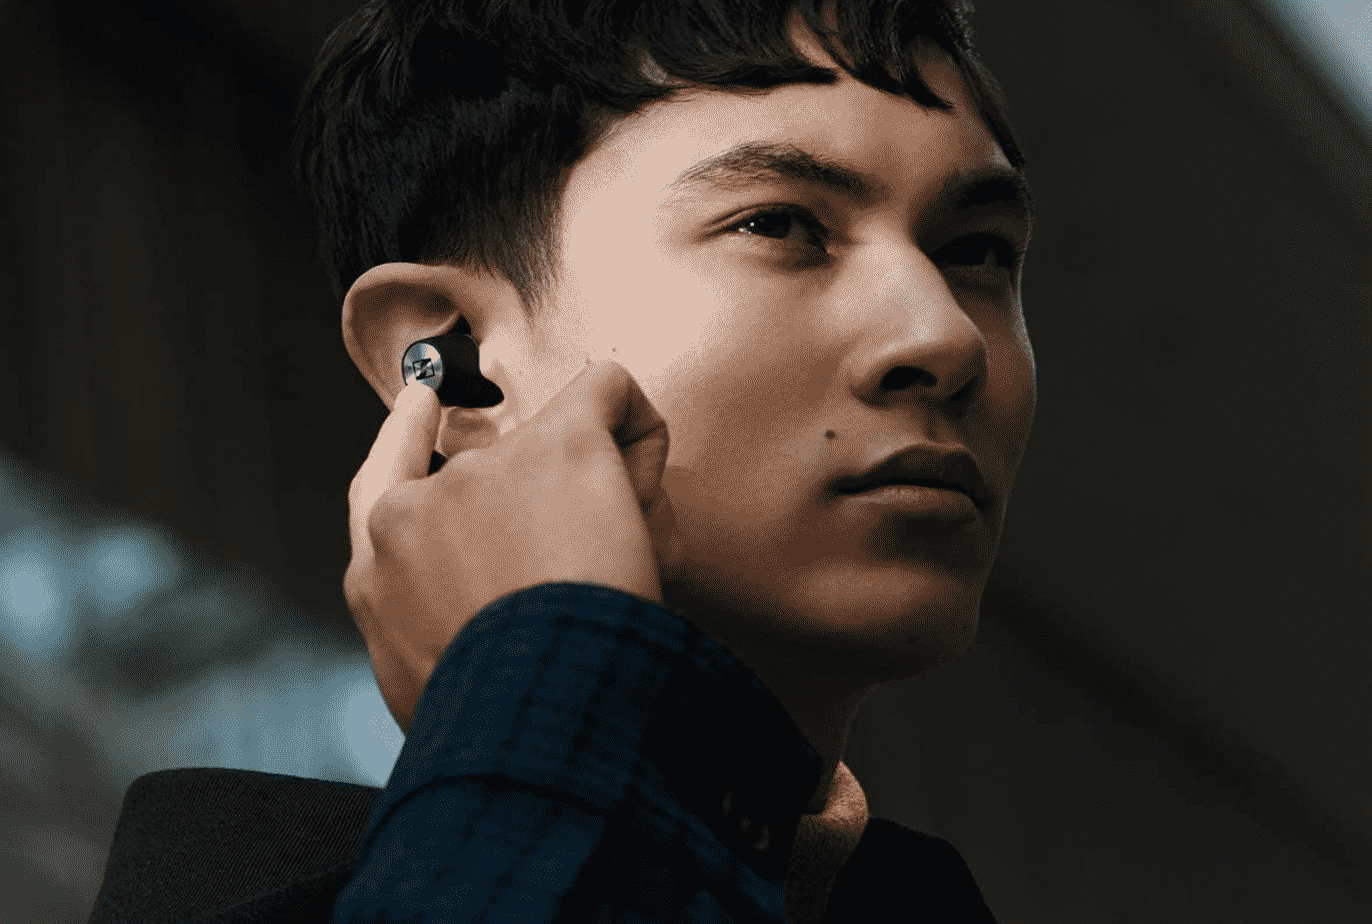 Sennheiser Quality Sound with the Half-Off CX 400BT True Wireless Earbuds